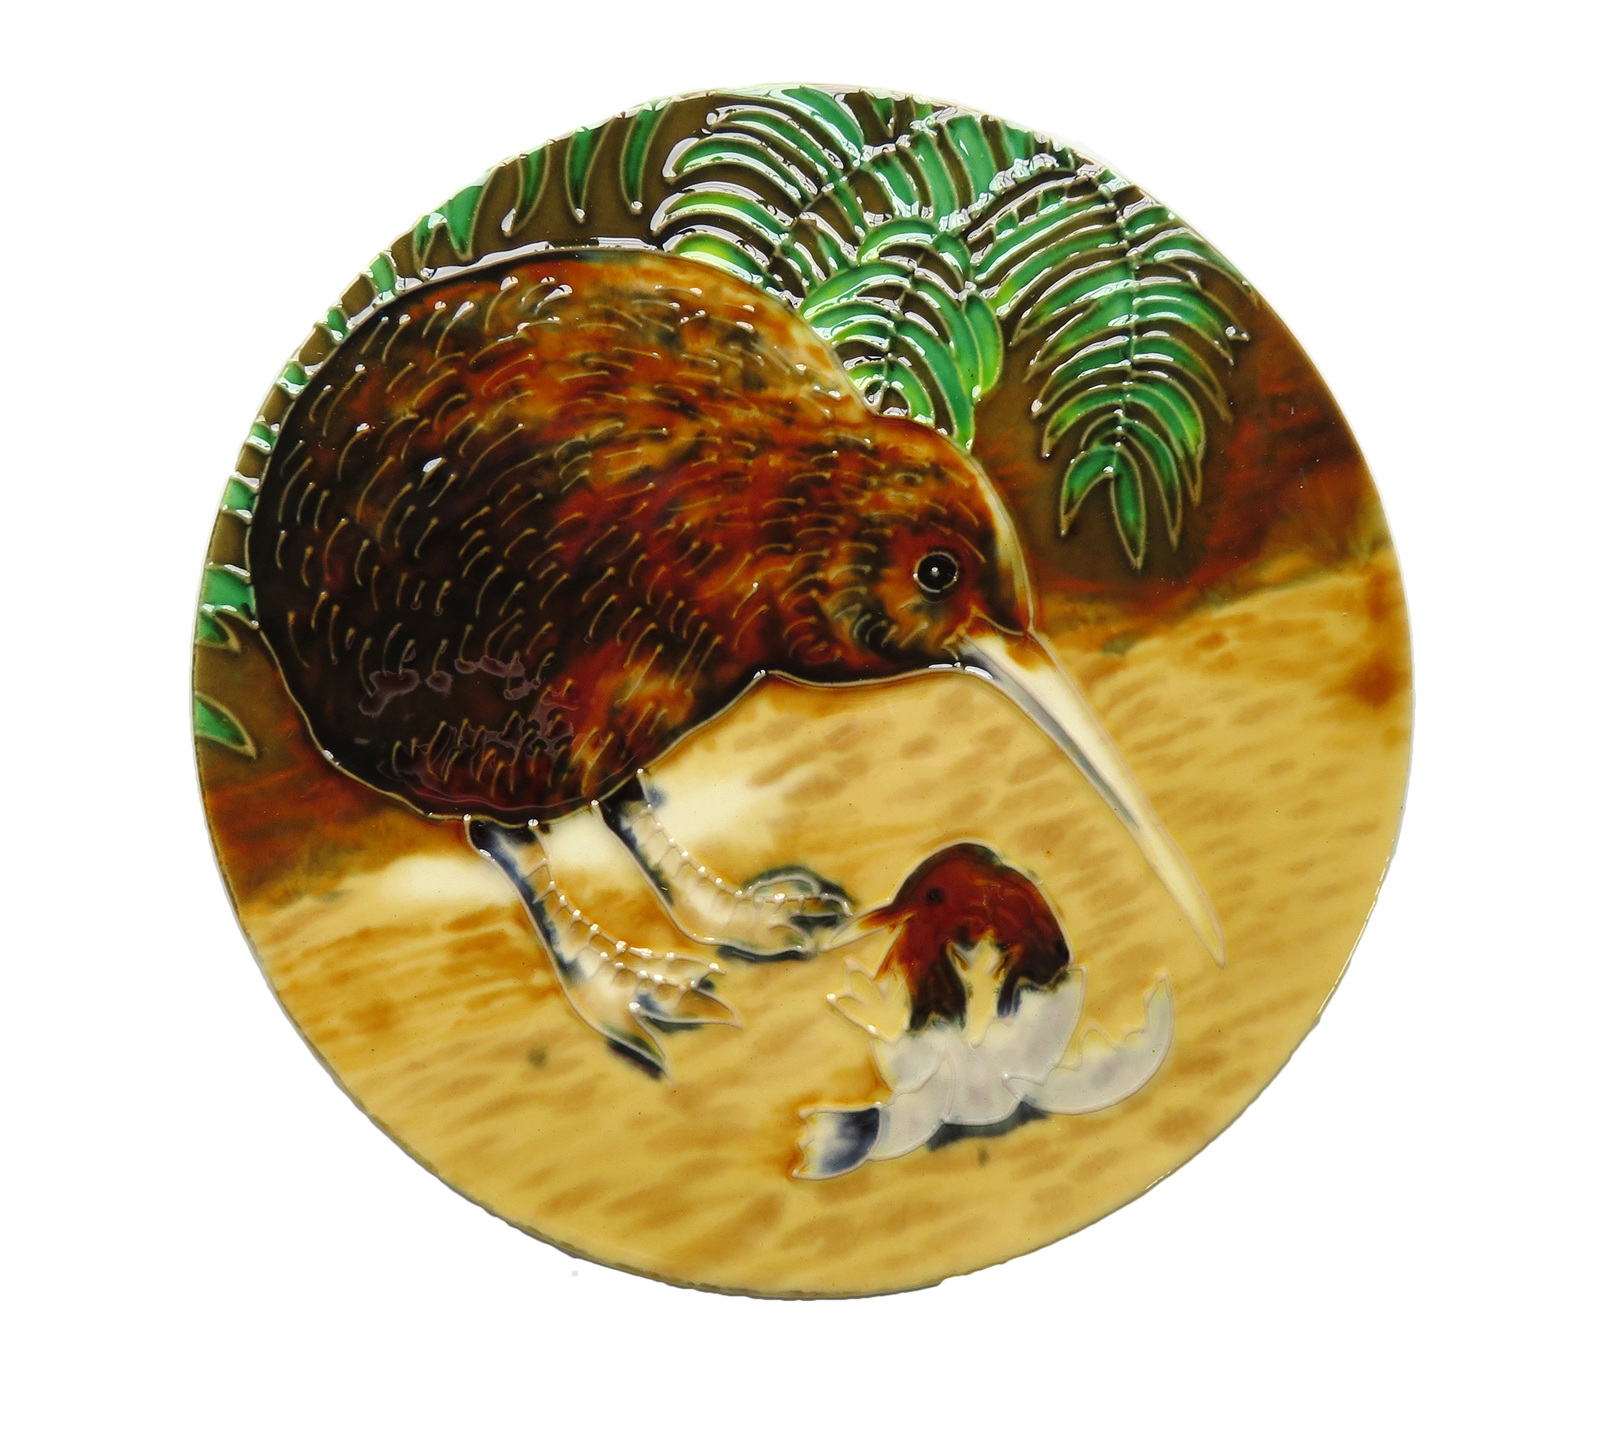 Kiwi and chick circular wall art - Wildside Gifts Public Site